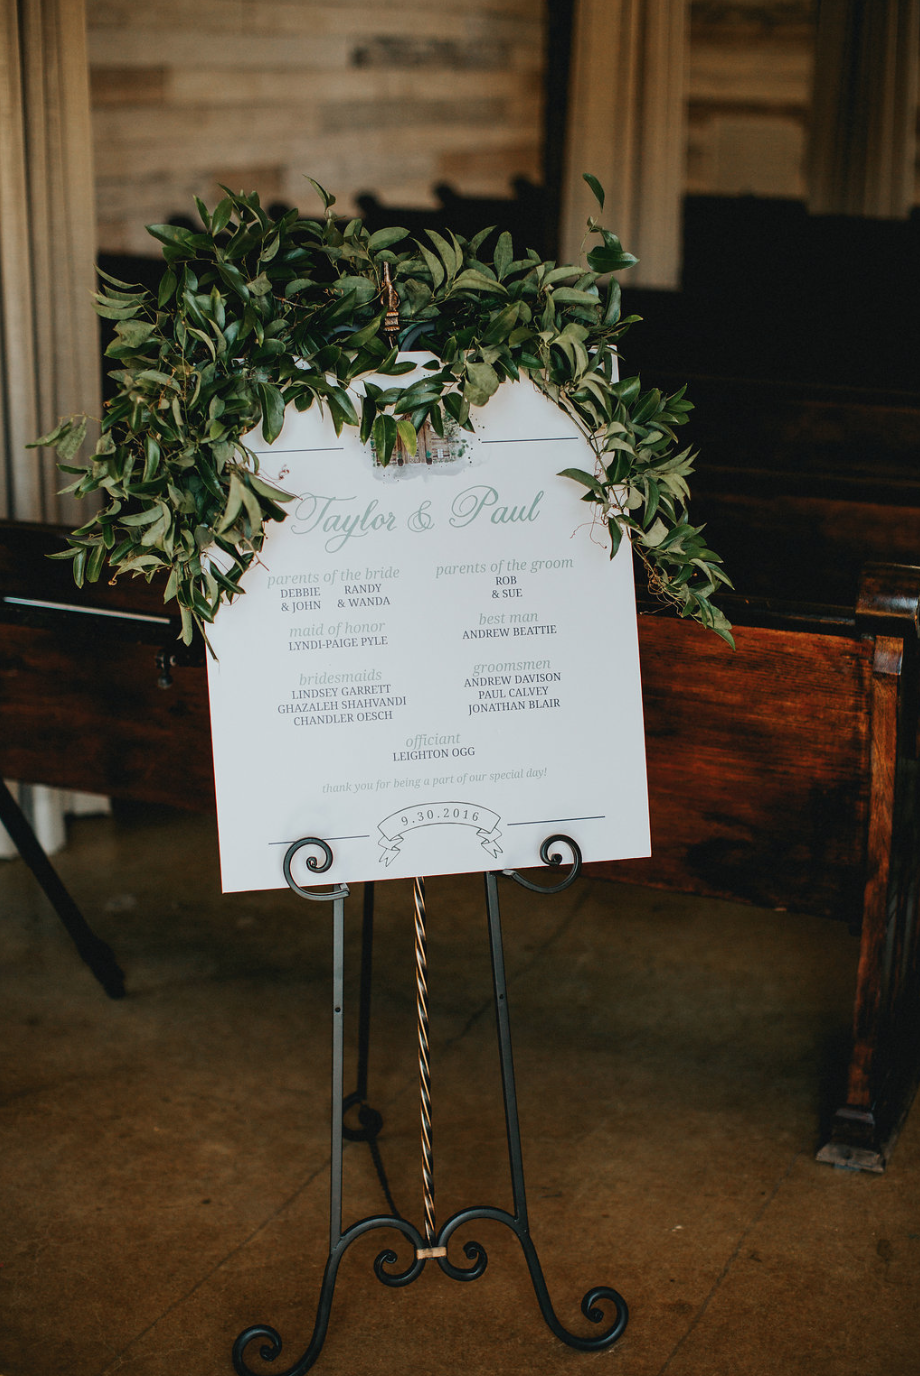 Ceremony program draped with greenery for the ceremony. By Maxit Flower Design in Houston, TX